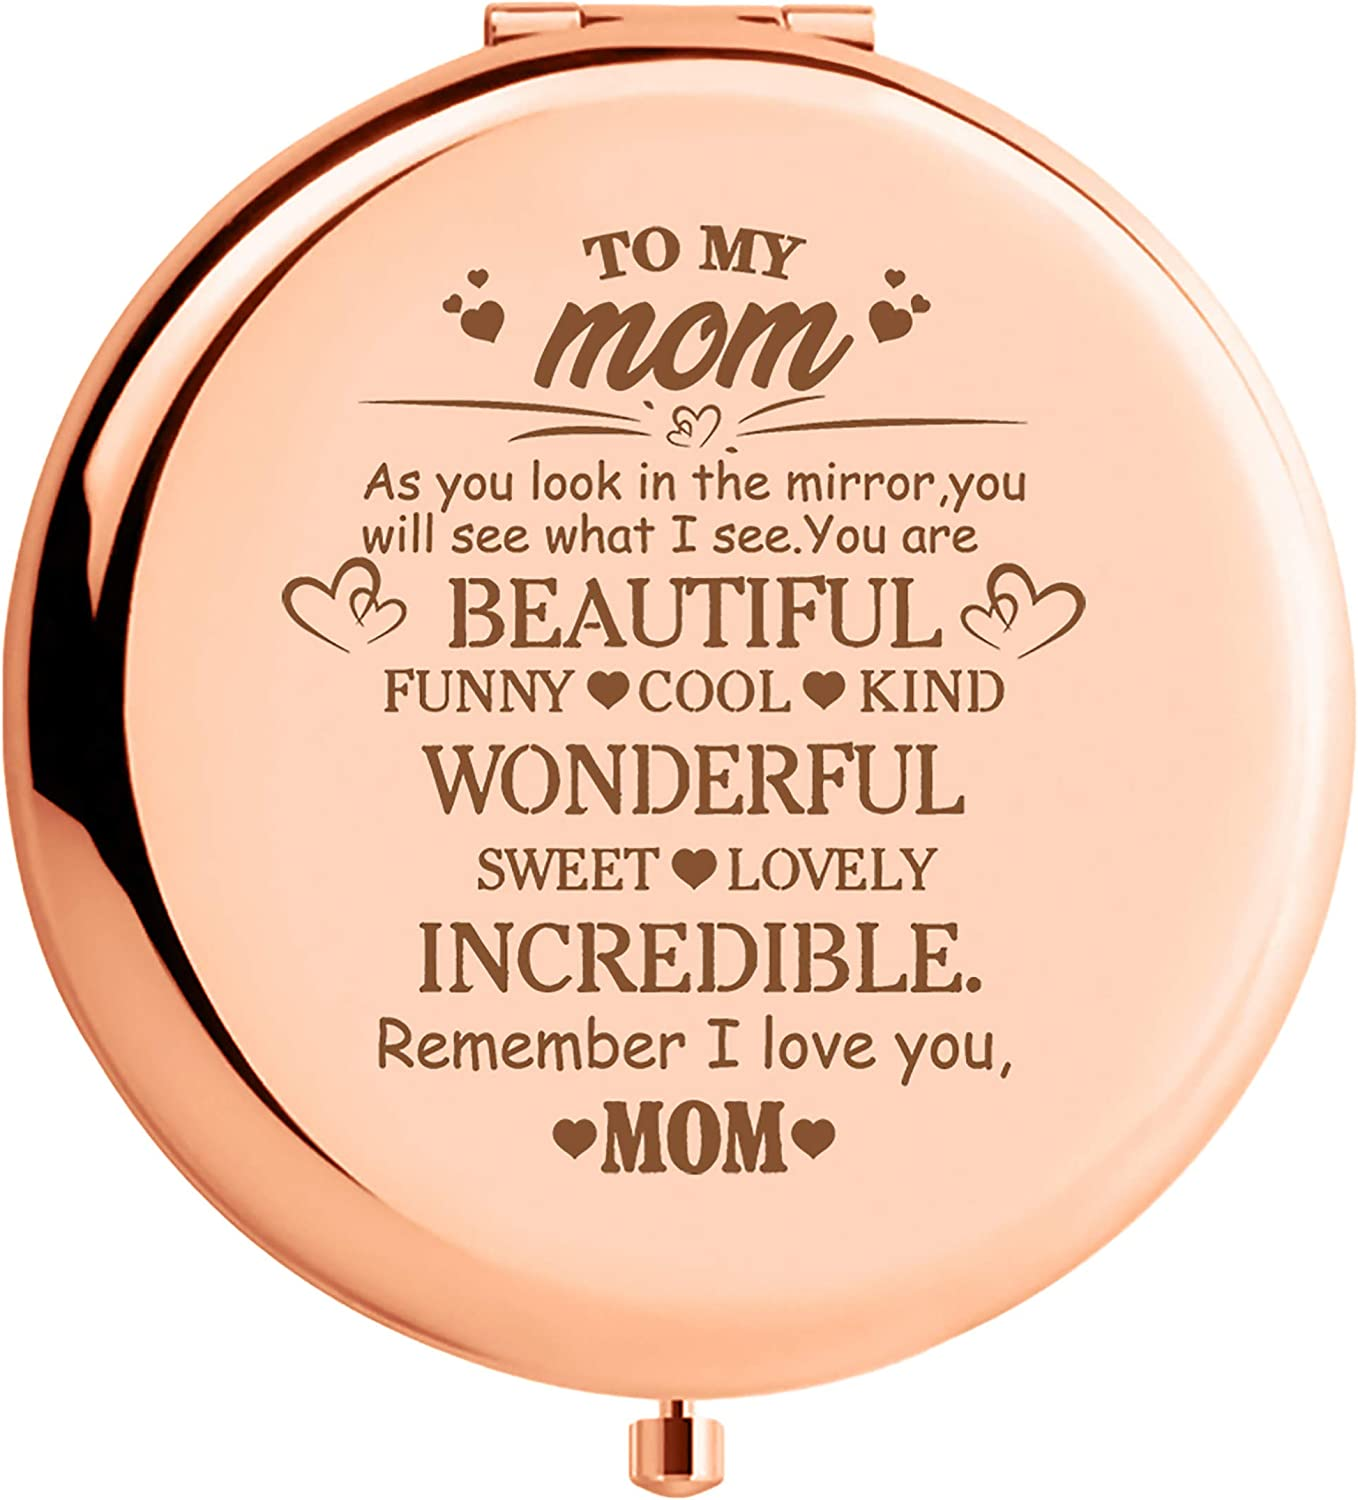 WIEZO-USA Mother'day Gifts - Rose Gold Mirror Gift for mom - to My mom - You are Beautiful Funny Cool Kind.Remember I Love You mom